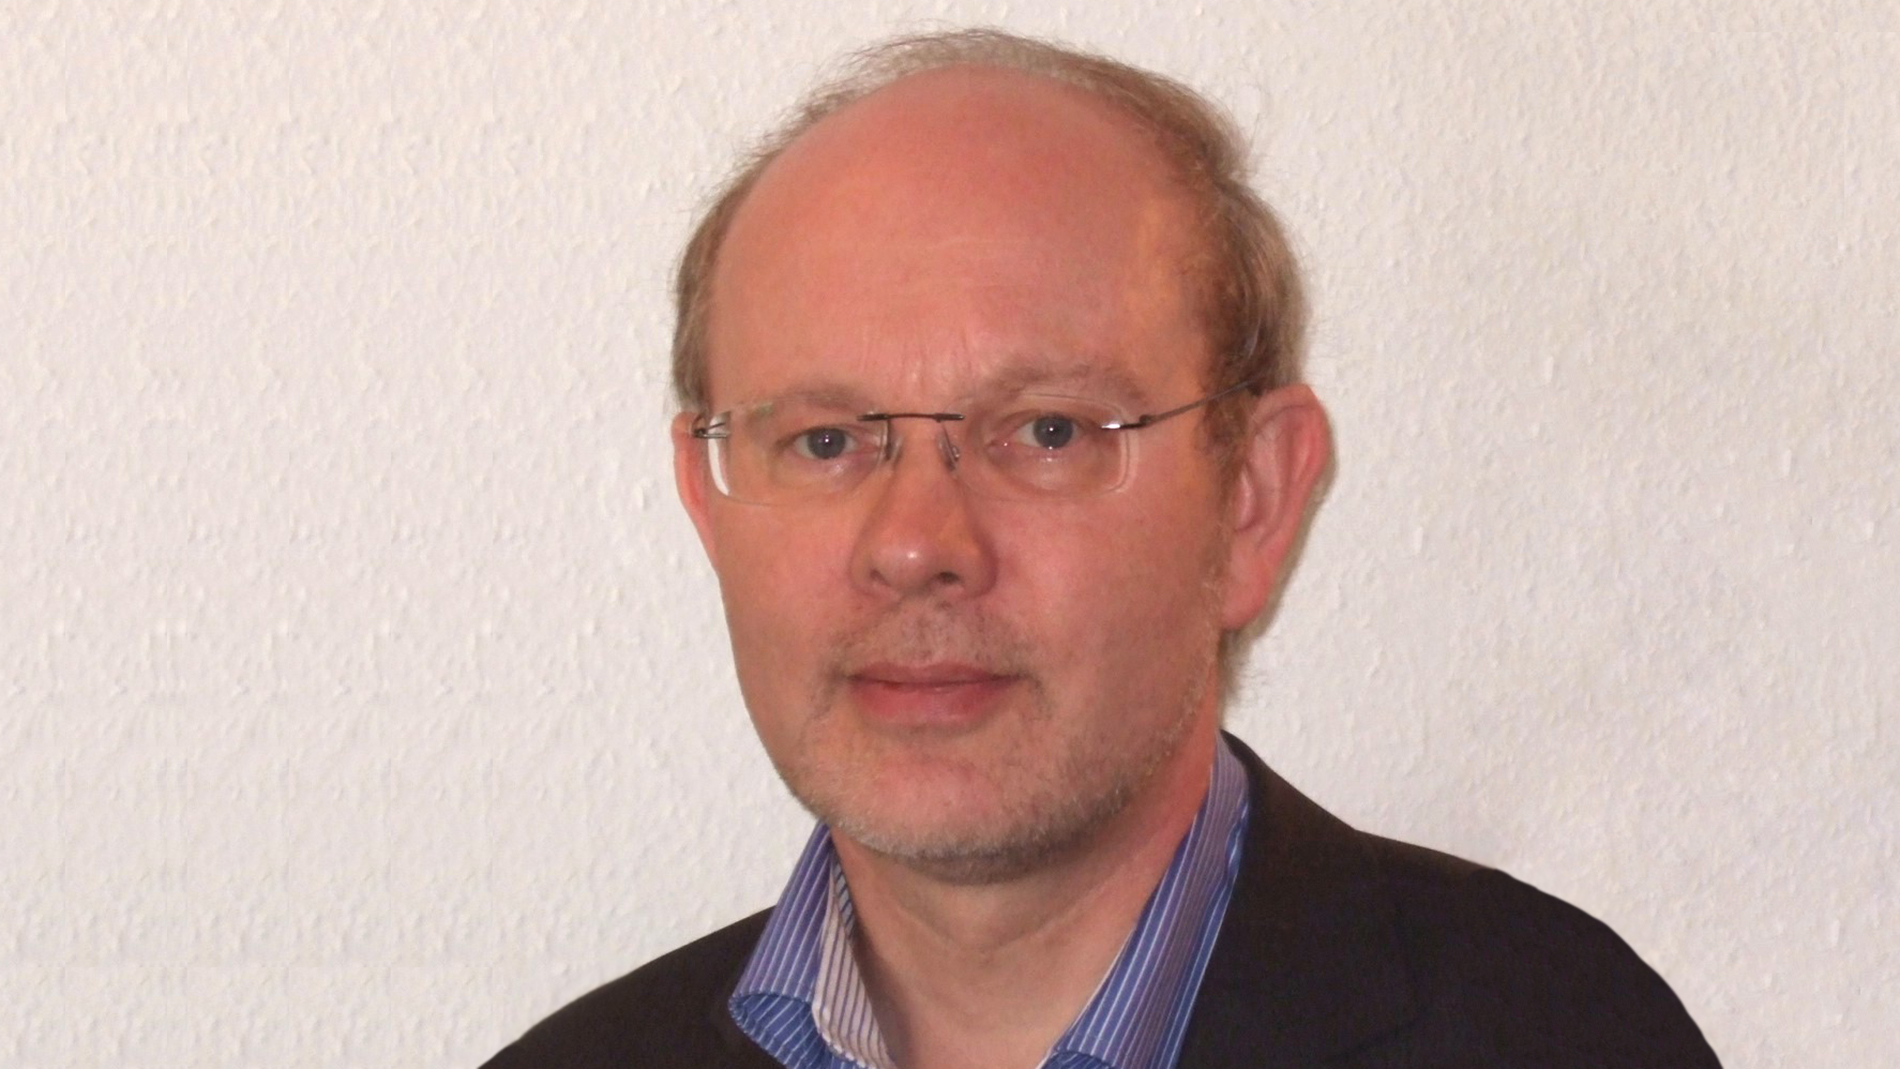 Prof. Dr. Martin März, Fraunhofer Institute of Integrated Systems and Device Technology (IISB), Germany